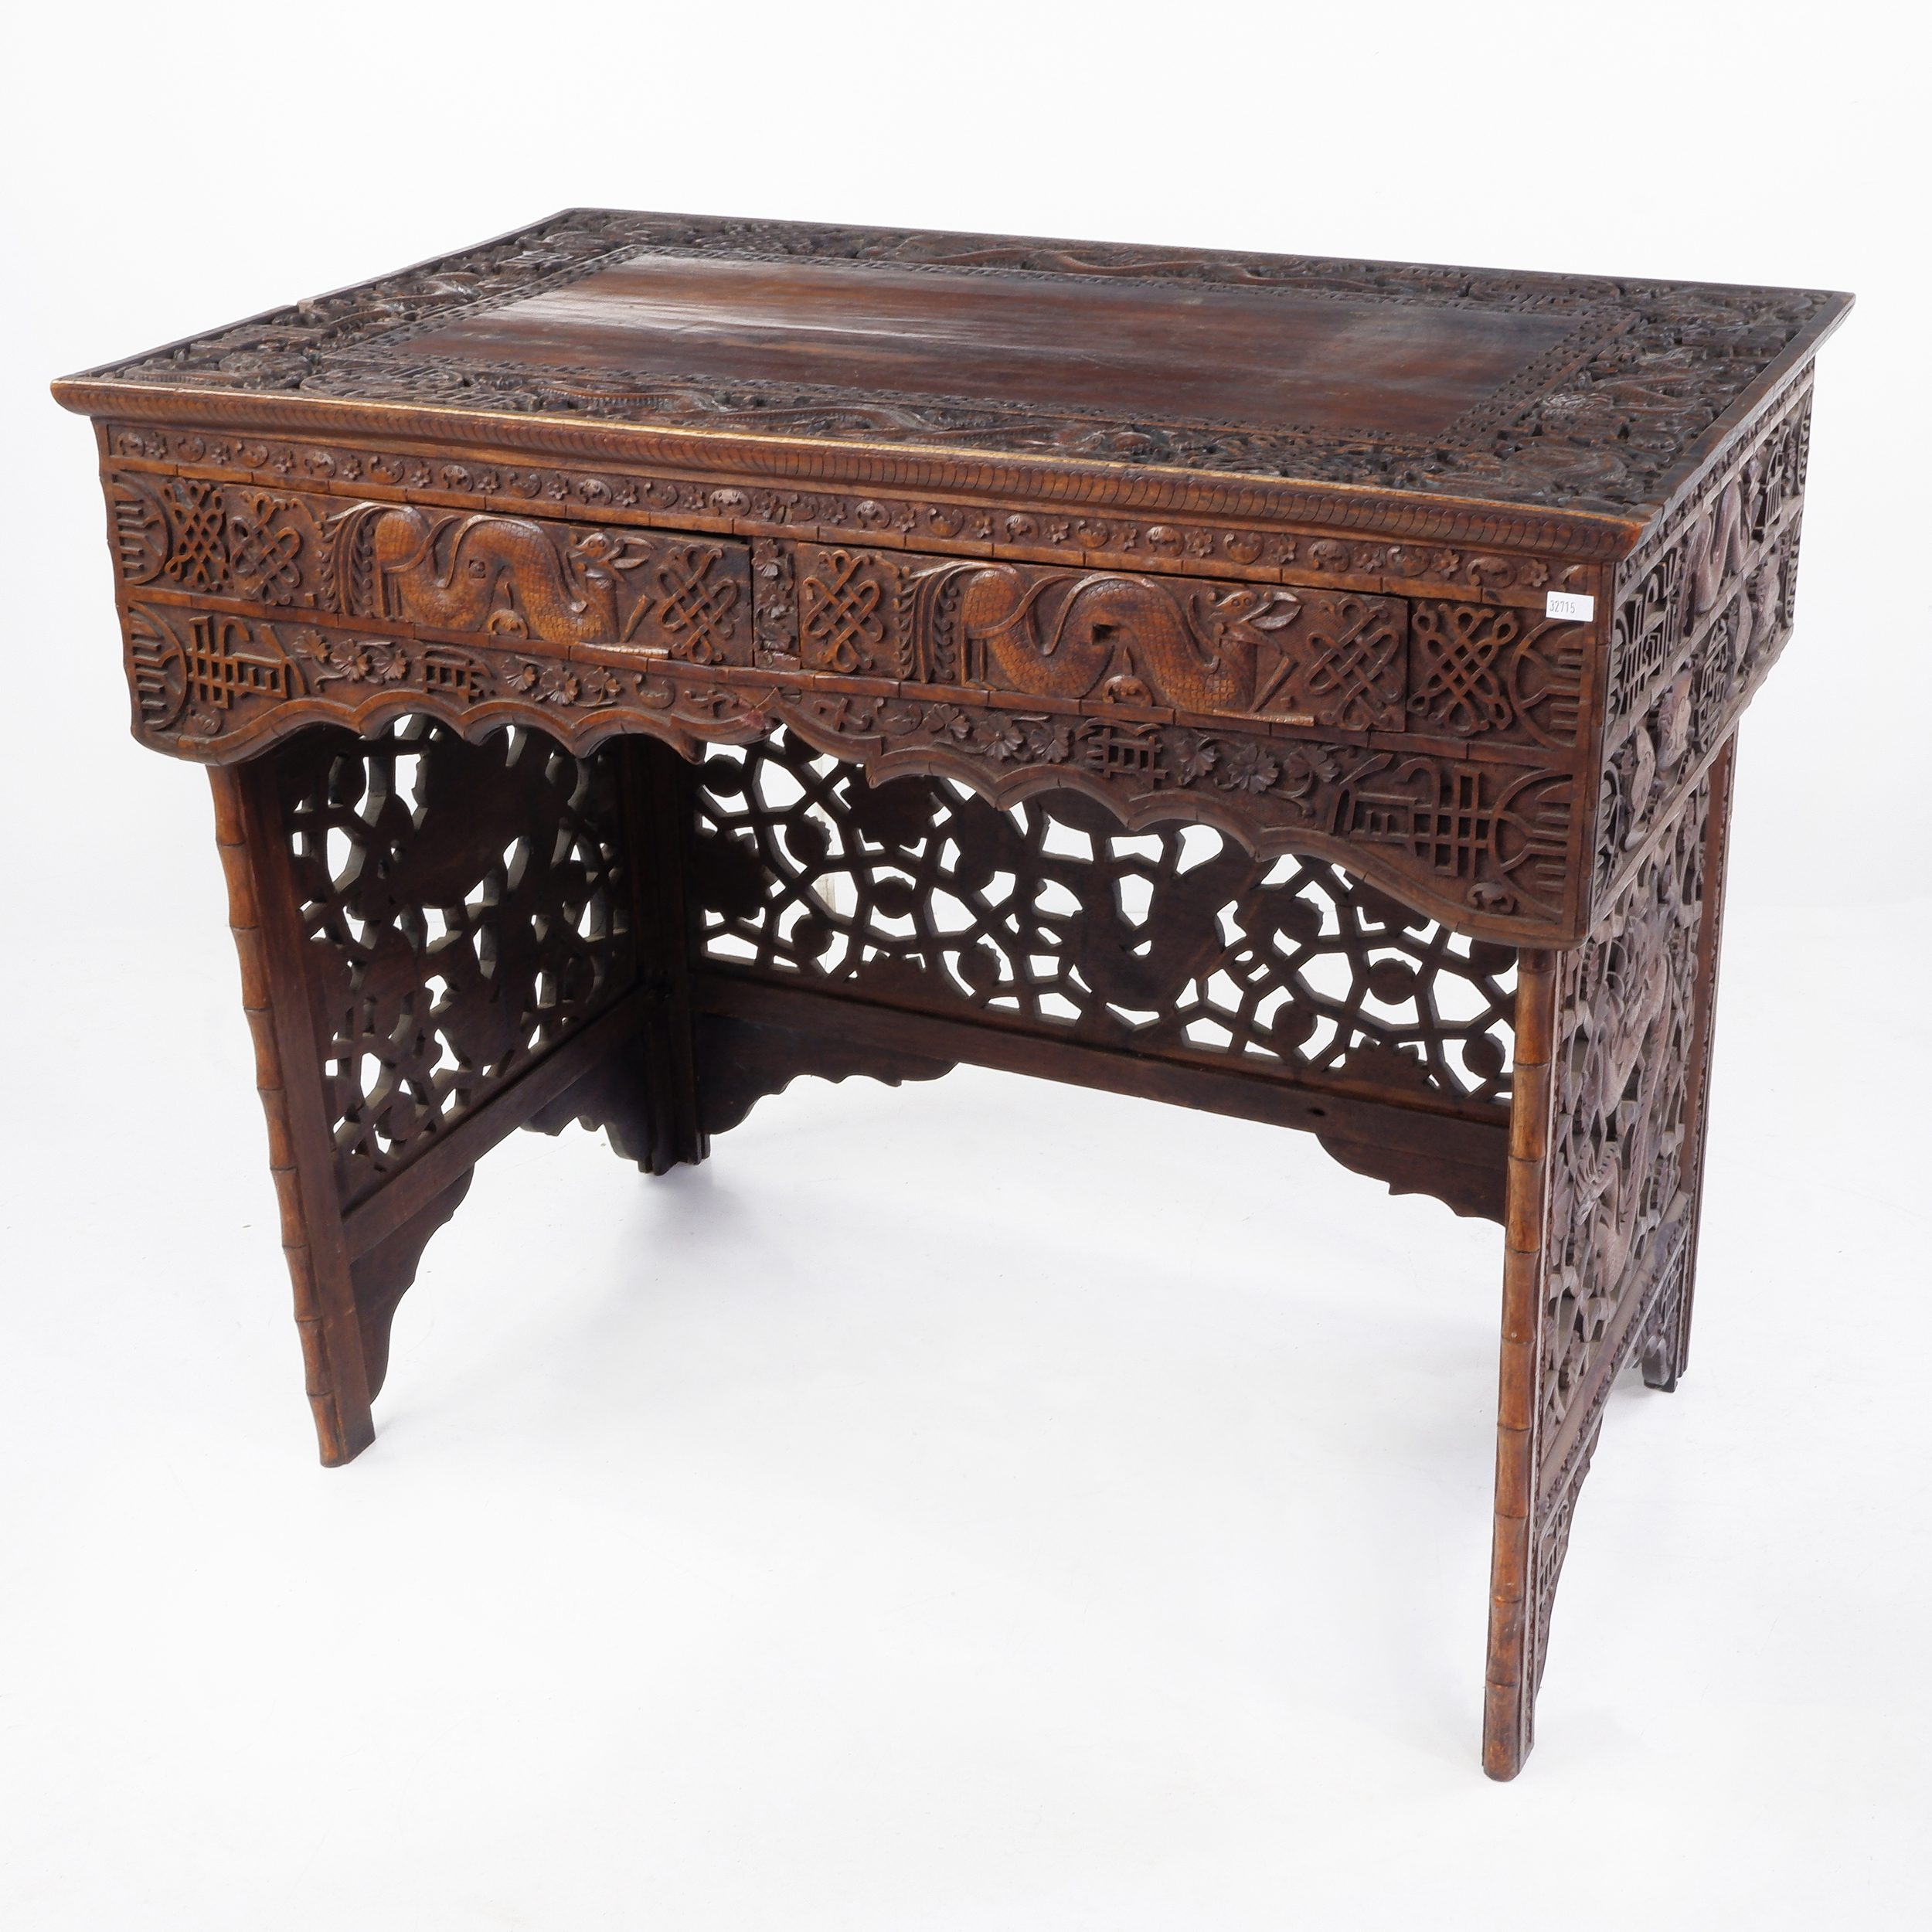 'South Chinese or Burmese Teak Campaign Desk Profusely Carved with Dragons and Auspicious Symbols, Circa 1900'